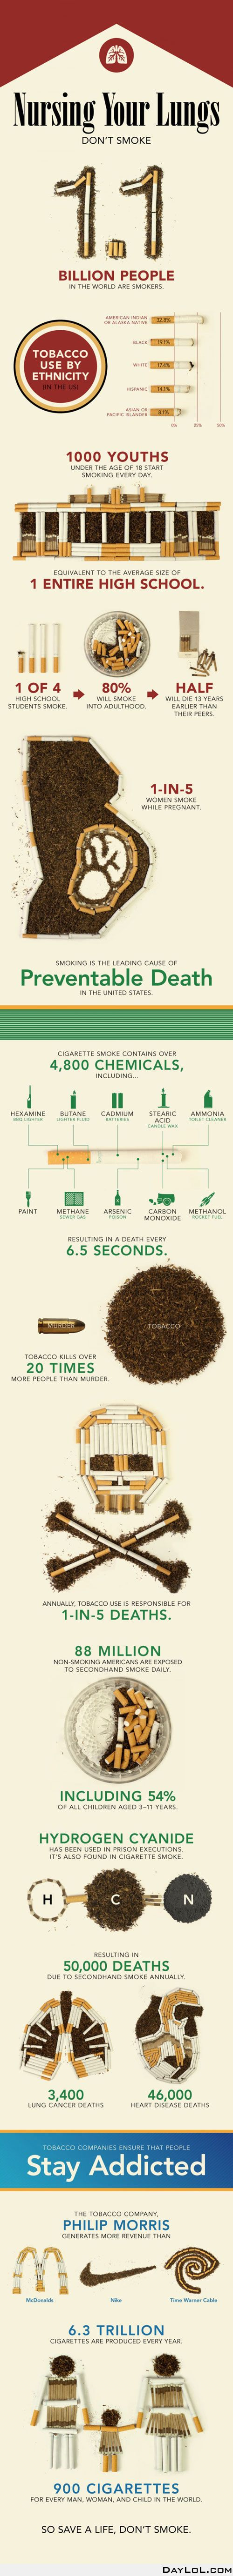 Smoking facts..and people still pay Big Tobacco to send them to an early grave...stick a fork n me!